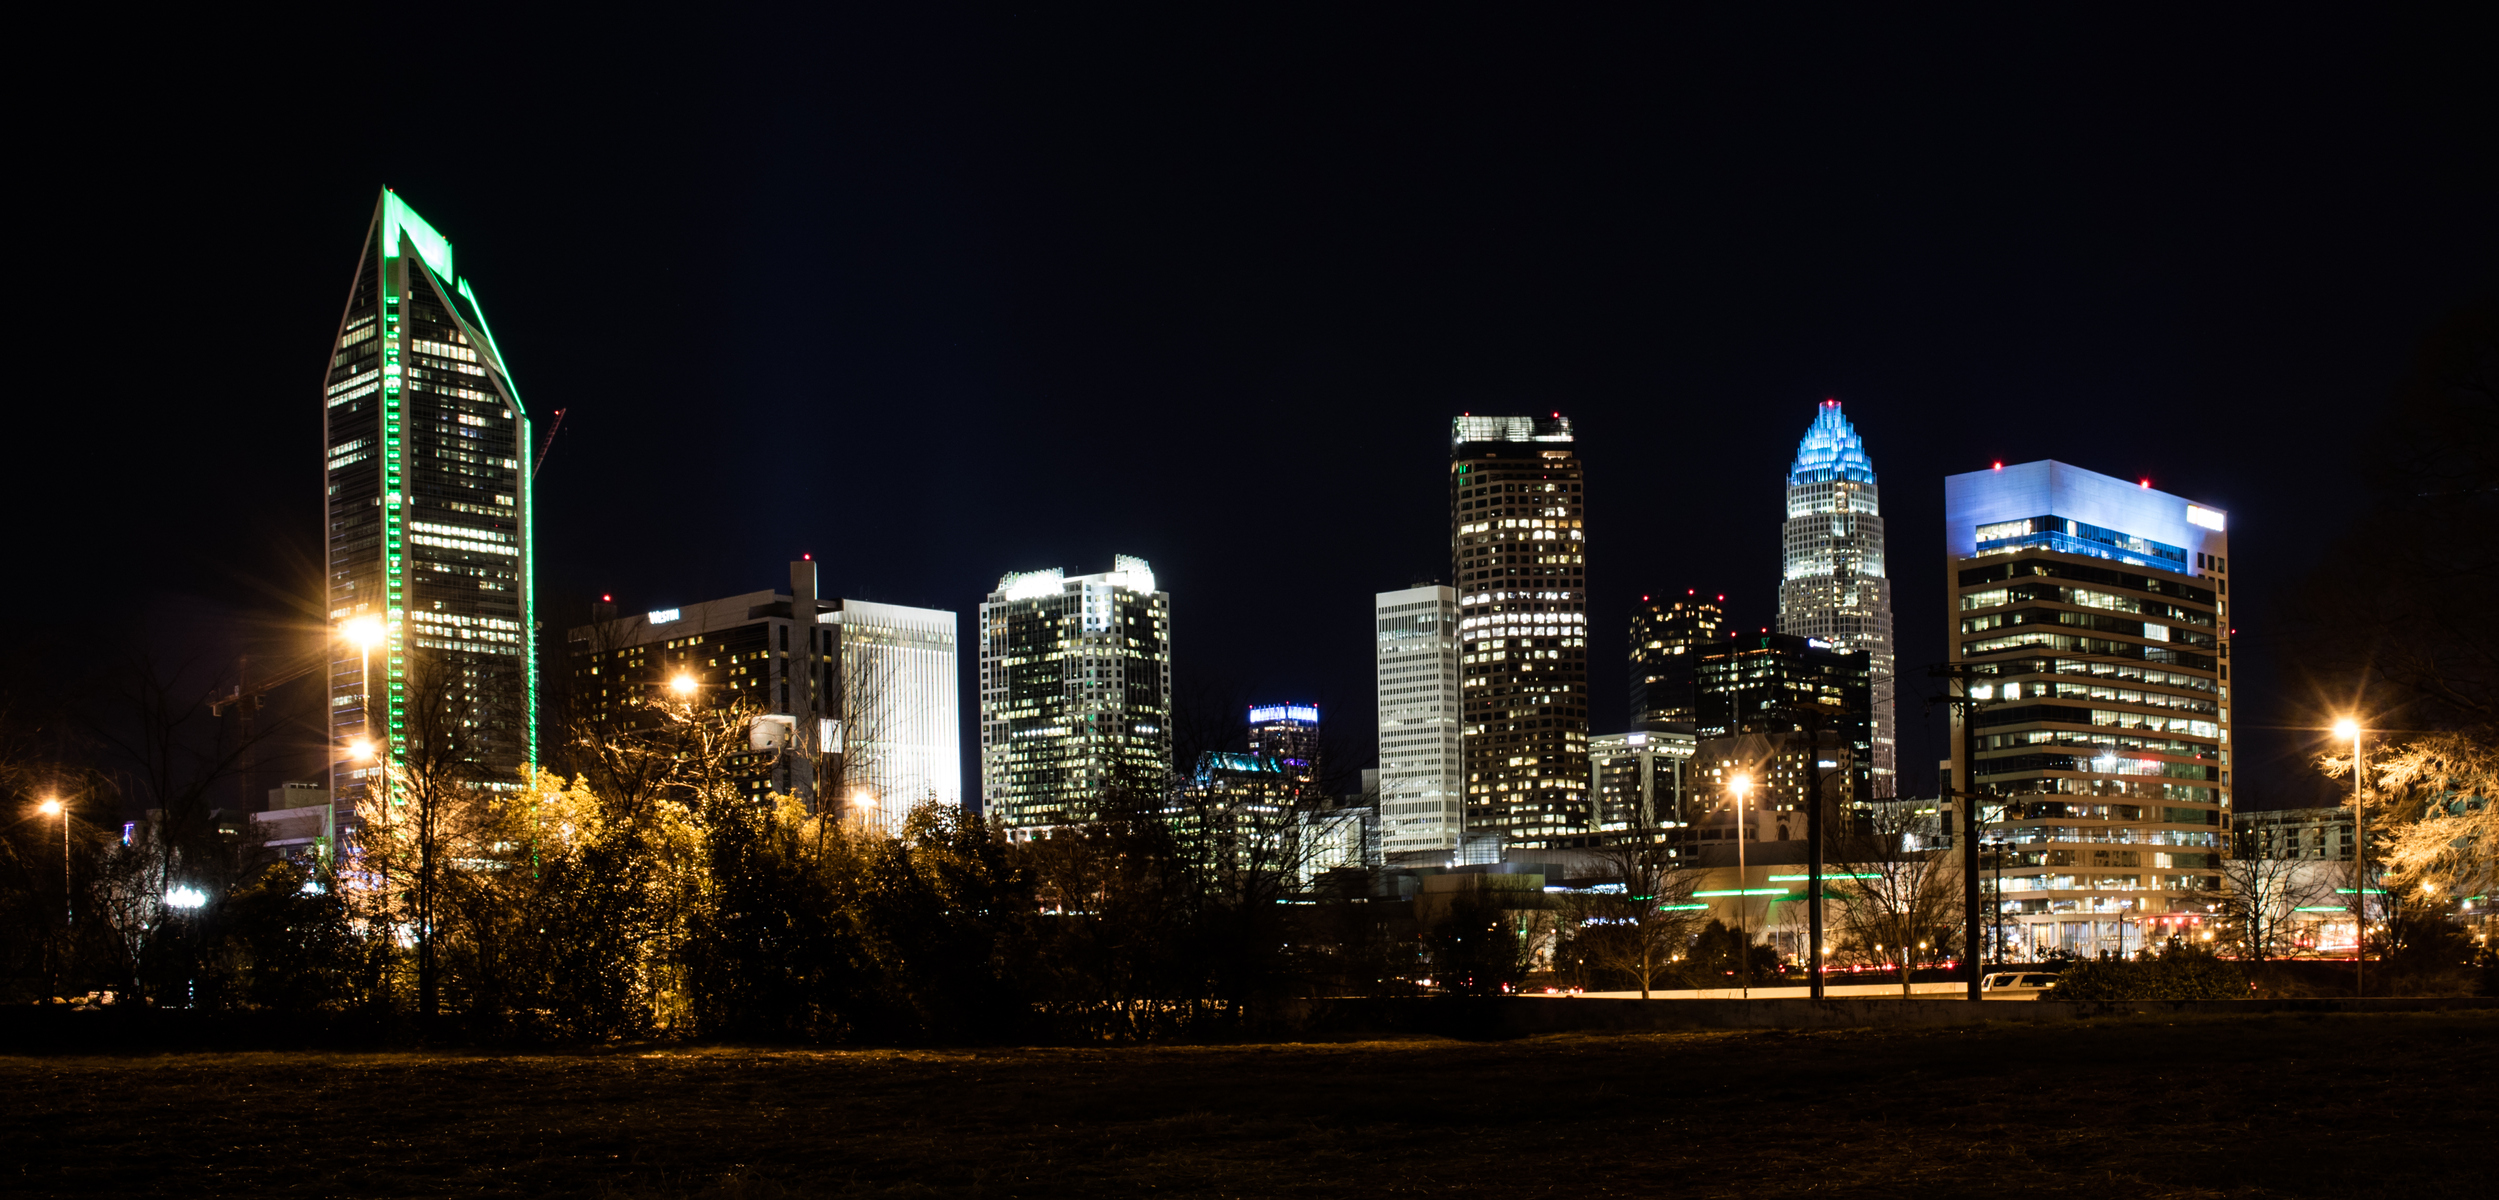 Charlotte Skyline Nightime from the West